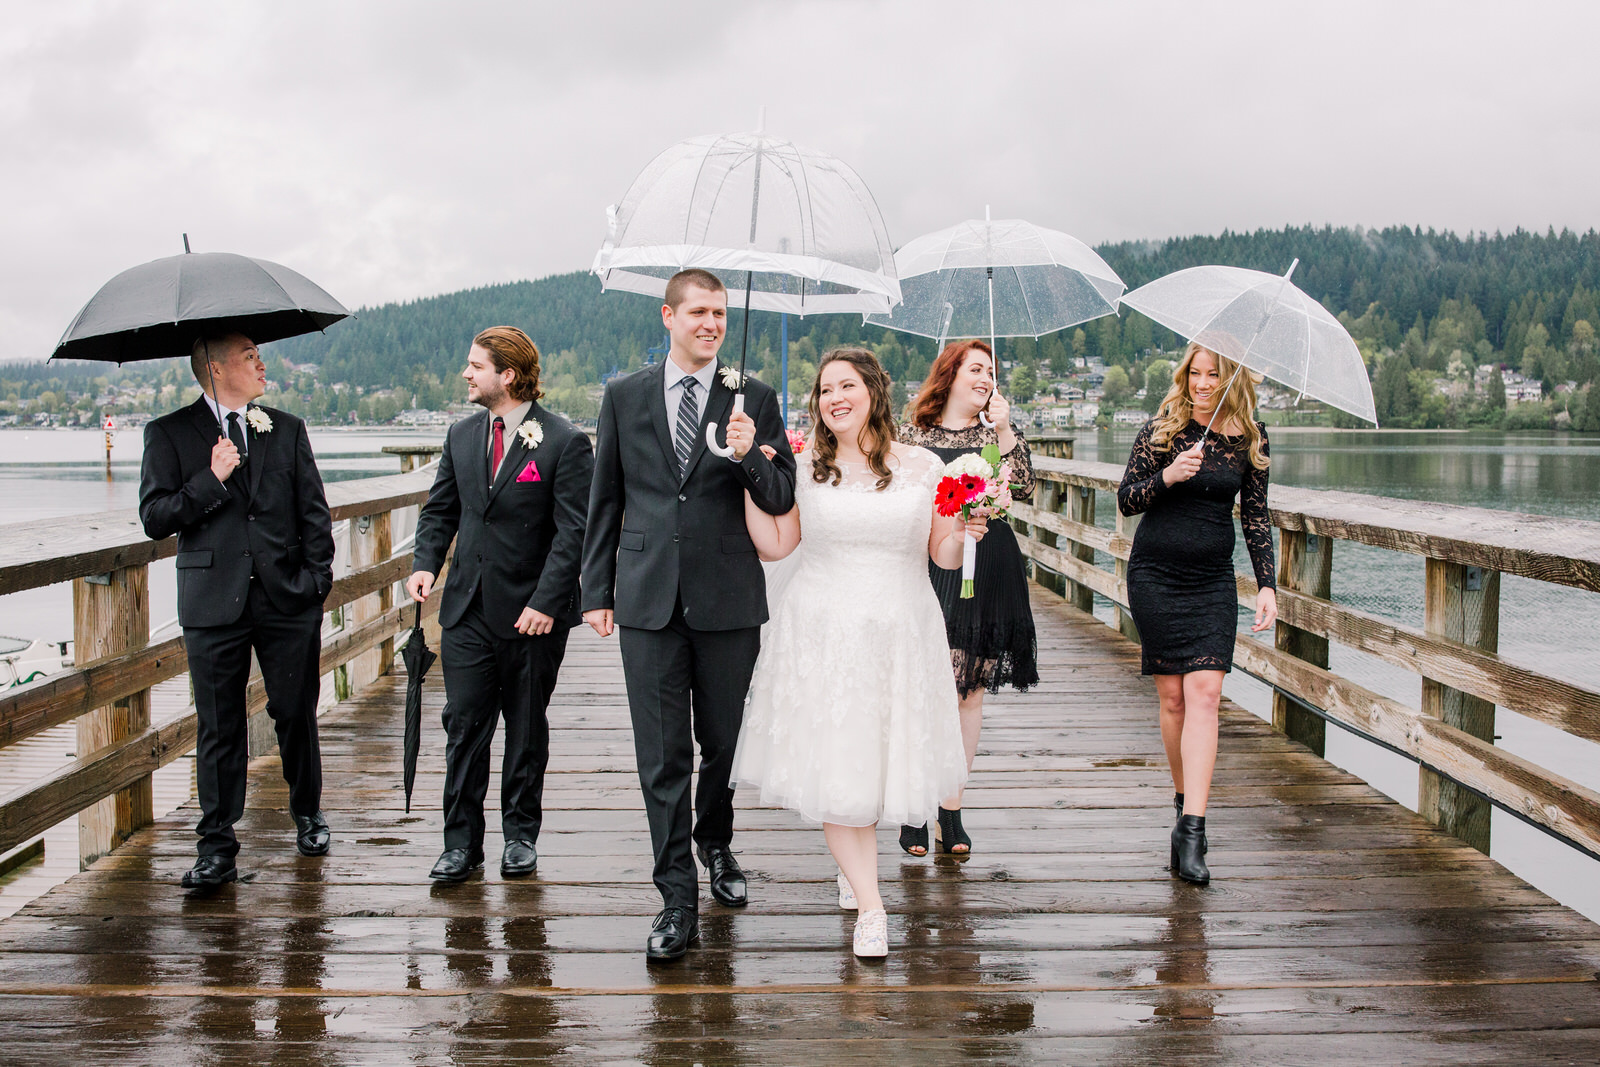 Rainy West Coast Wedding